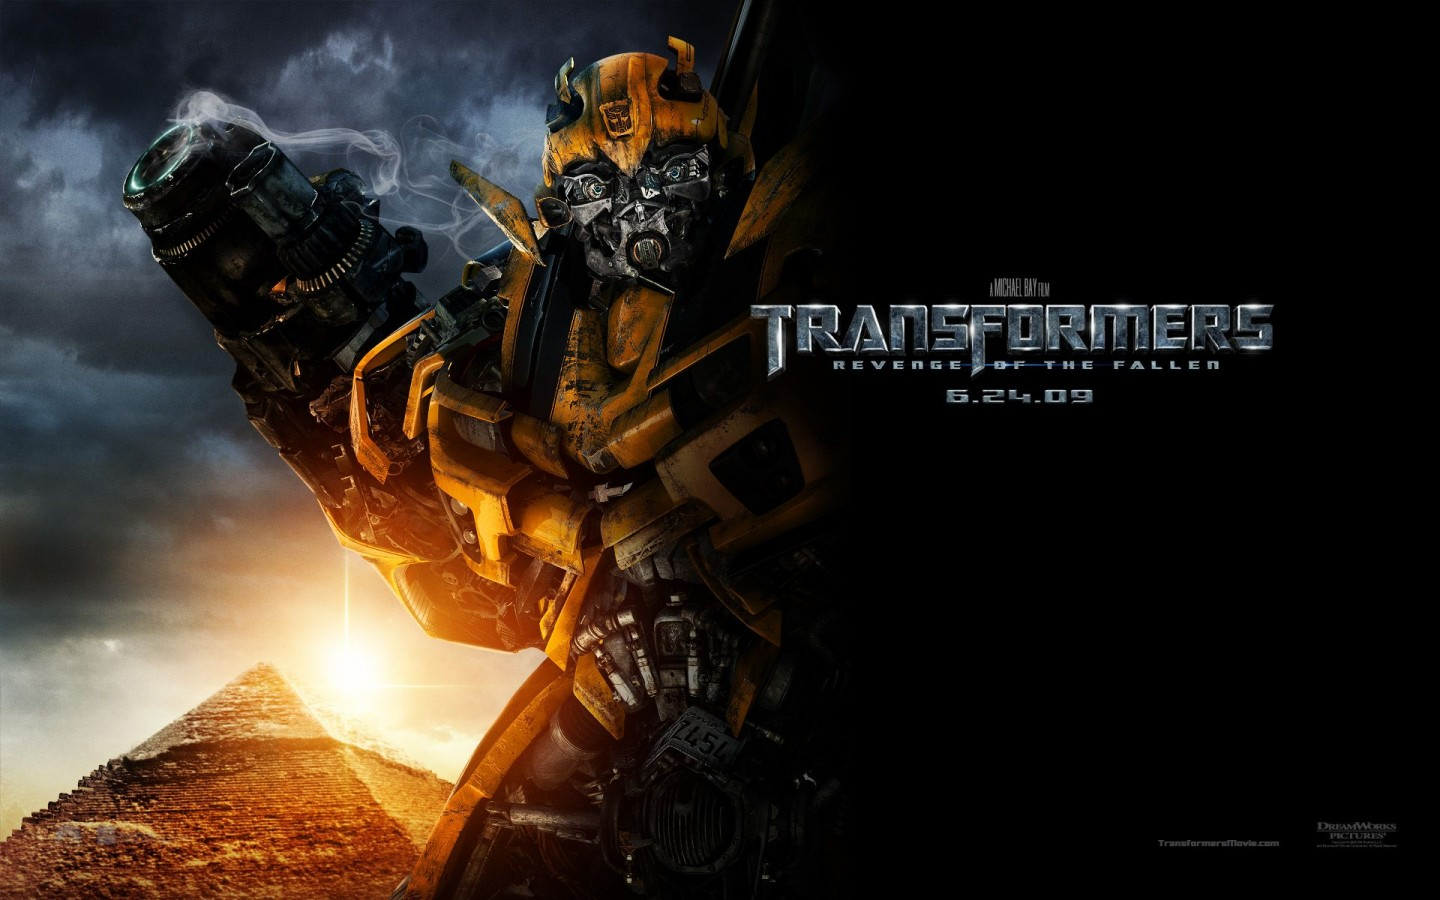 Transformers Classic Desktop Wallpaper 49620